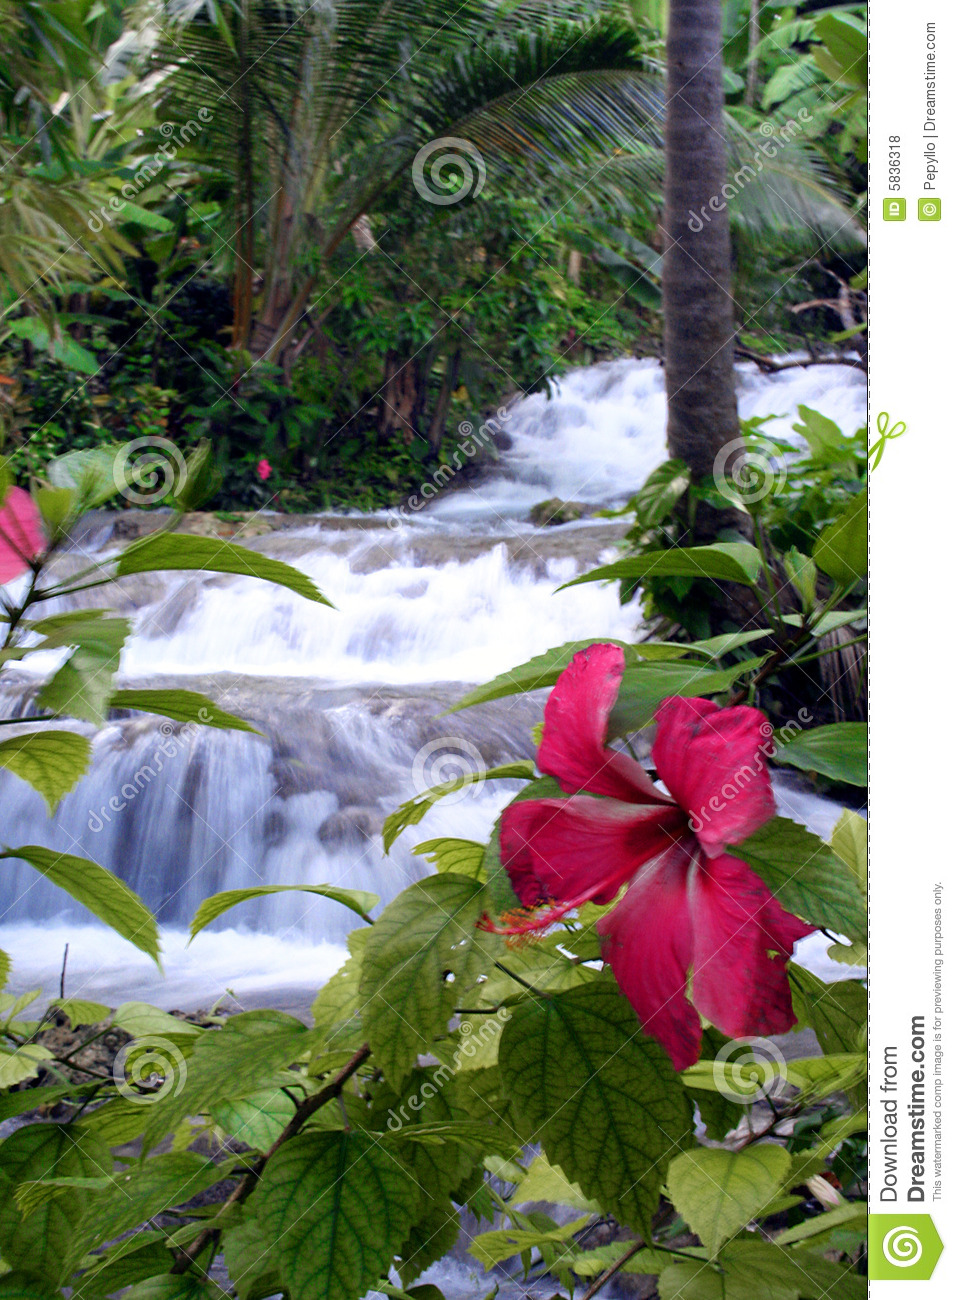 Nature Images 2mb: Tropical Waterfall Stock Photo. Image Of Nature, Outdoors